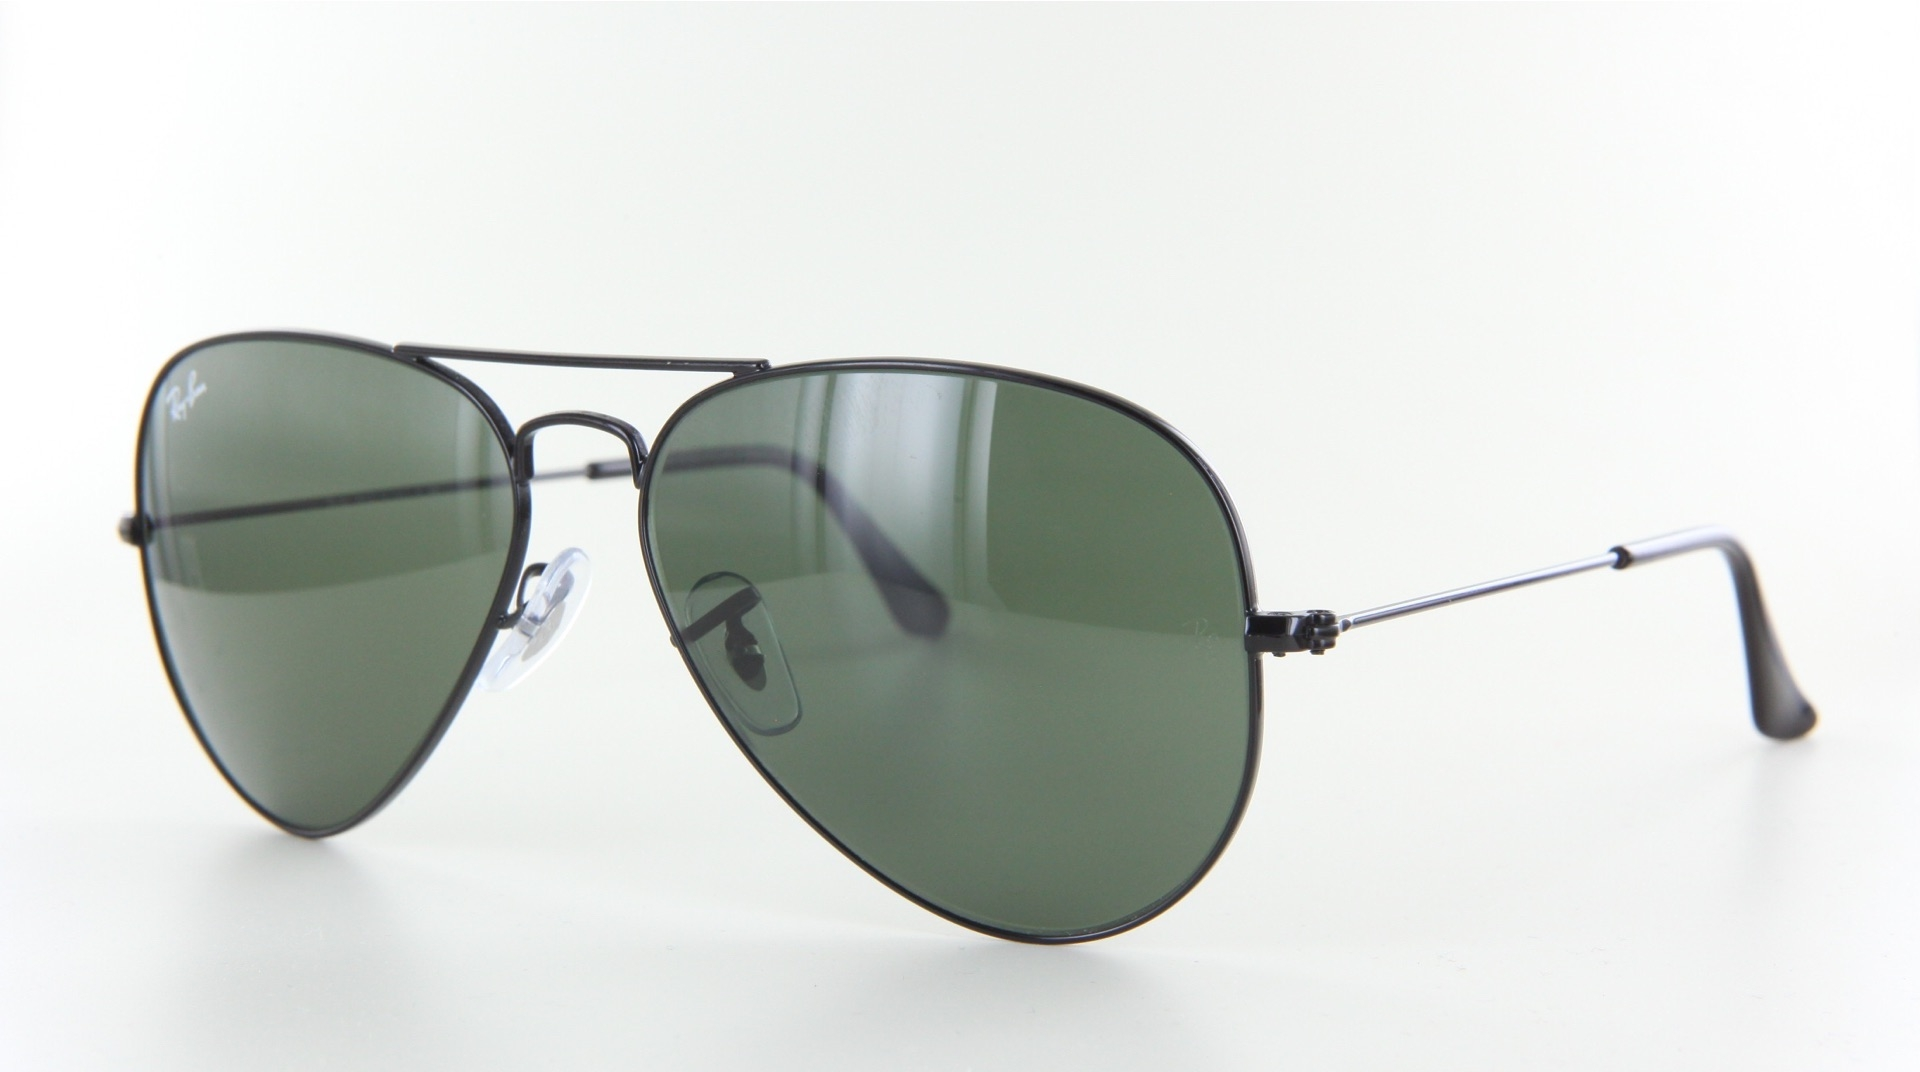 Ray-Ban - ref: 46483